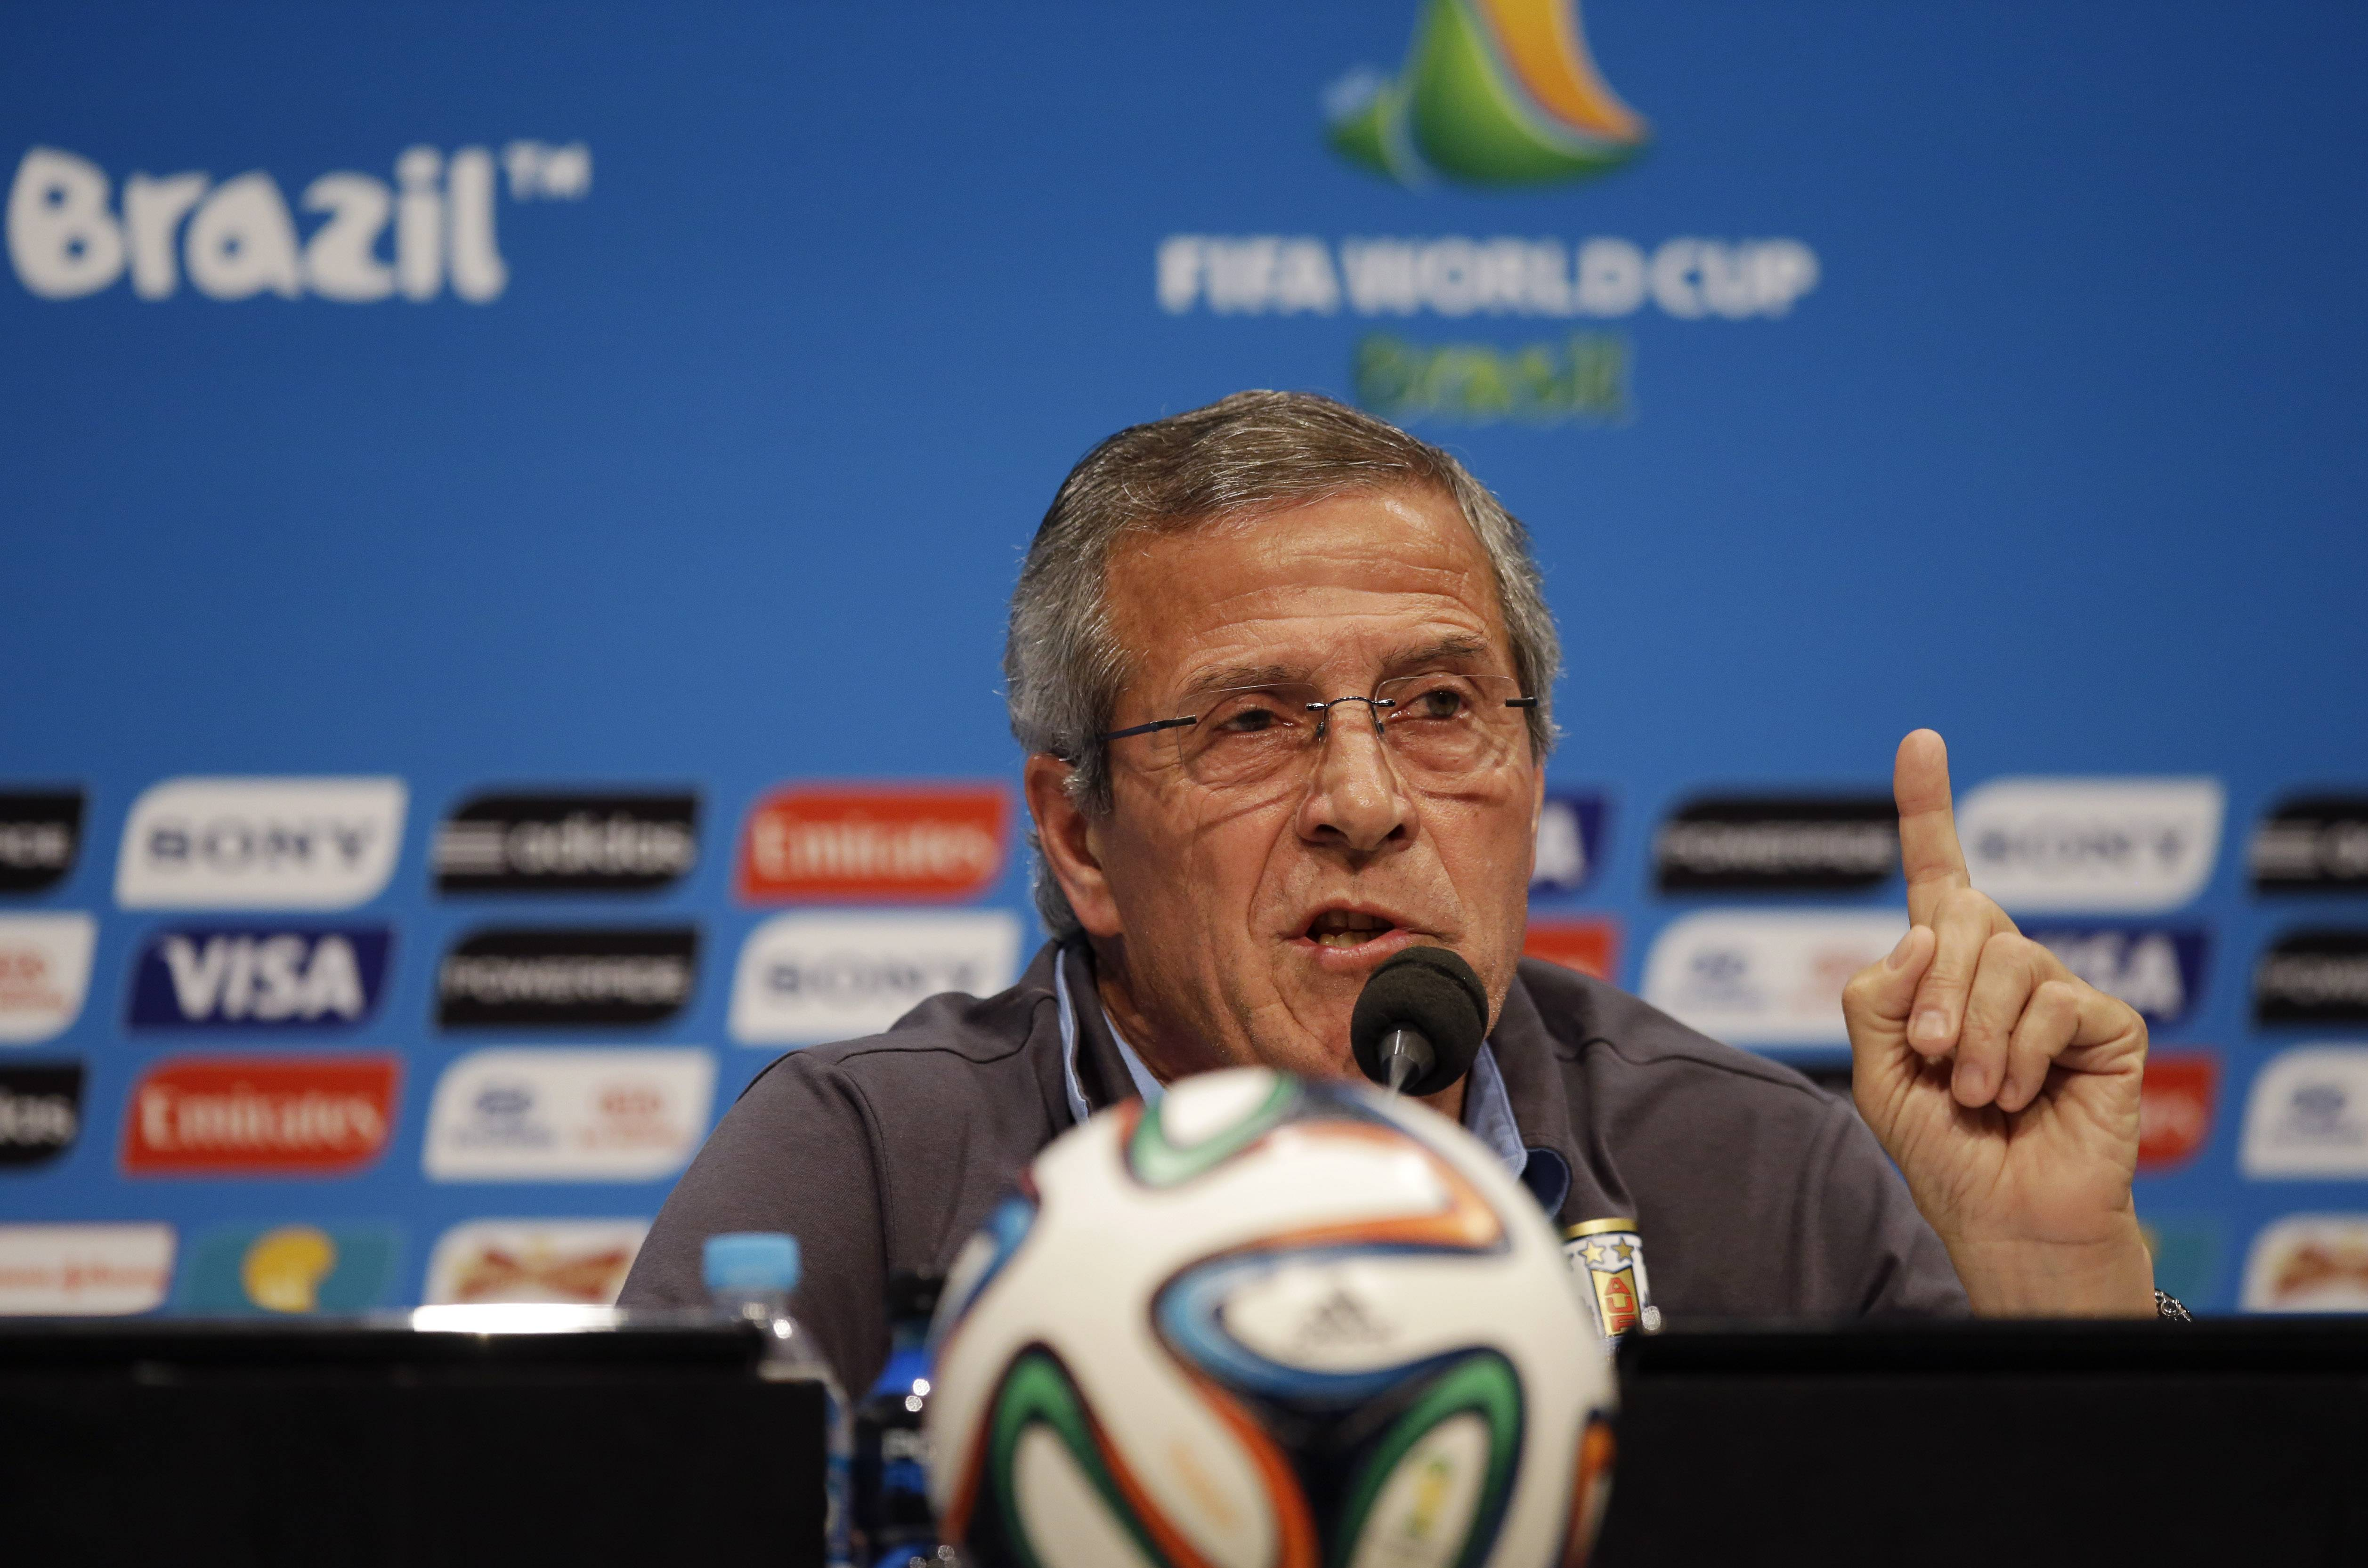 Uruguay's head coach Oscar Tabarez makes a statement during a press conference the day before the round of 16 World Cup soccer match between Colombia and Uruguay at the Maracana Stadium in Rio de Janeiro, Brazil, Friday, June 27, 2014.  FIFA banned Uruguay striker Luis Suarez from all football activities for four months on Thursday for biting an opponent at the World Cup, a punishment that rules him out of the rest of the tournament and the start of the upcoming Premier League season.